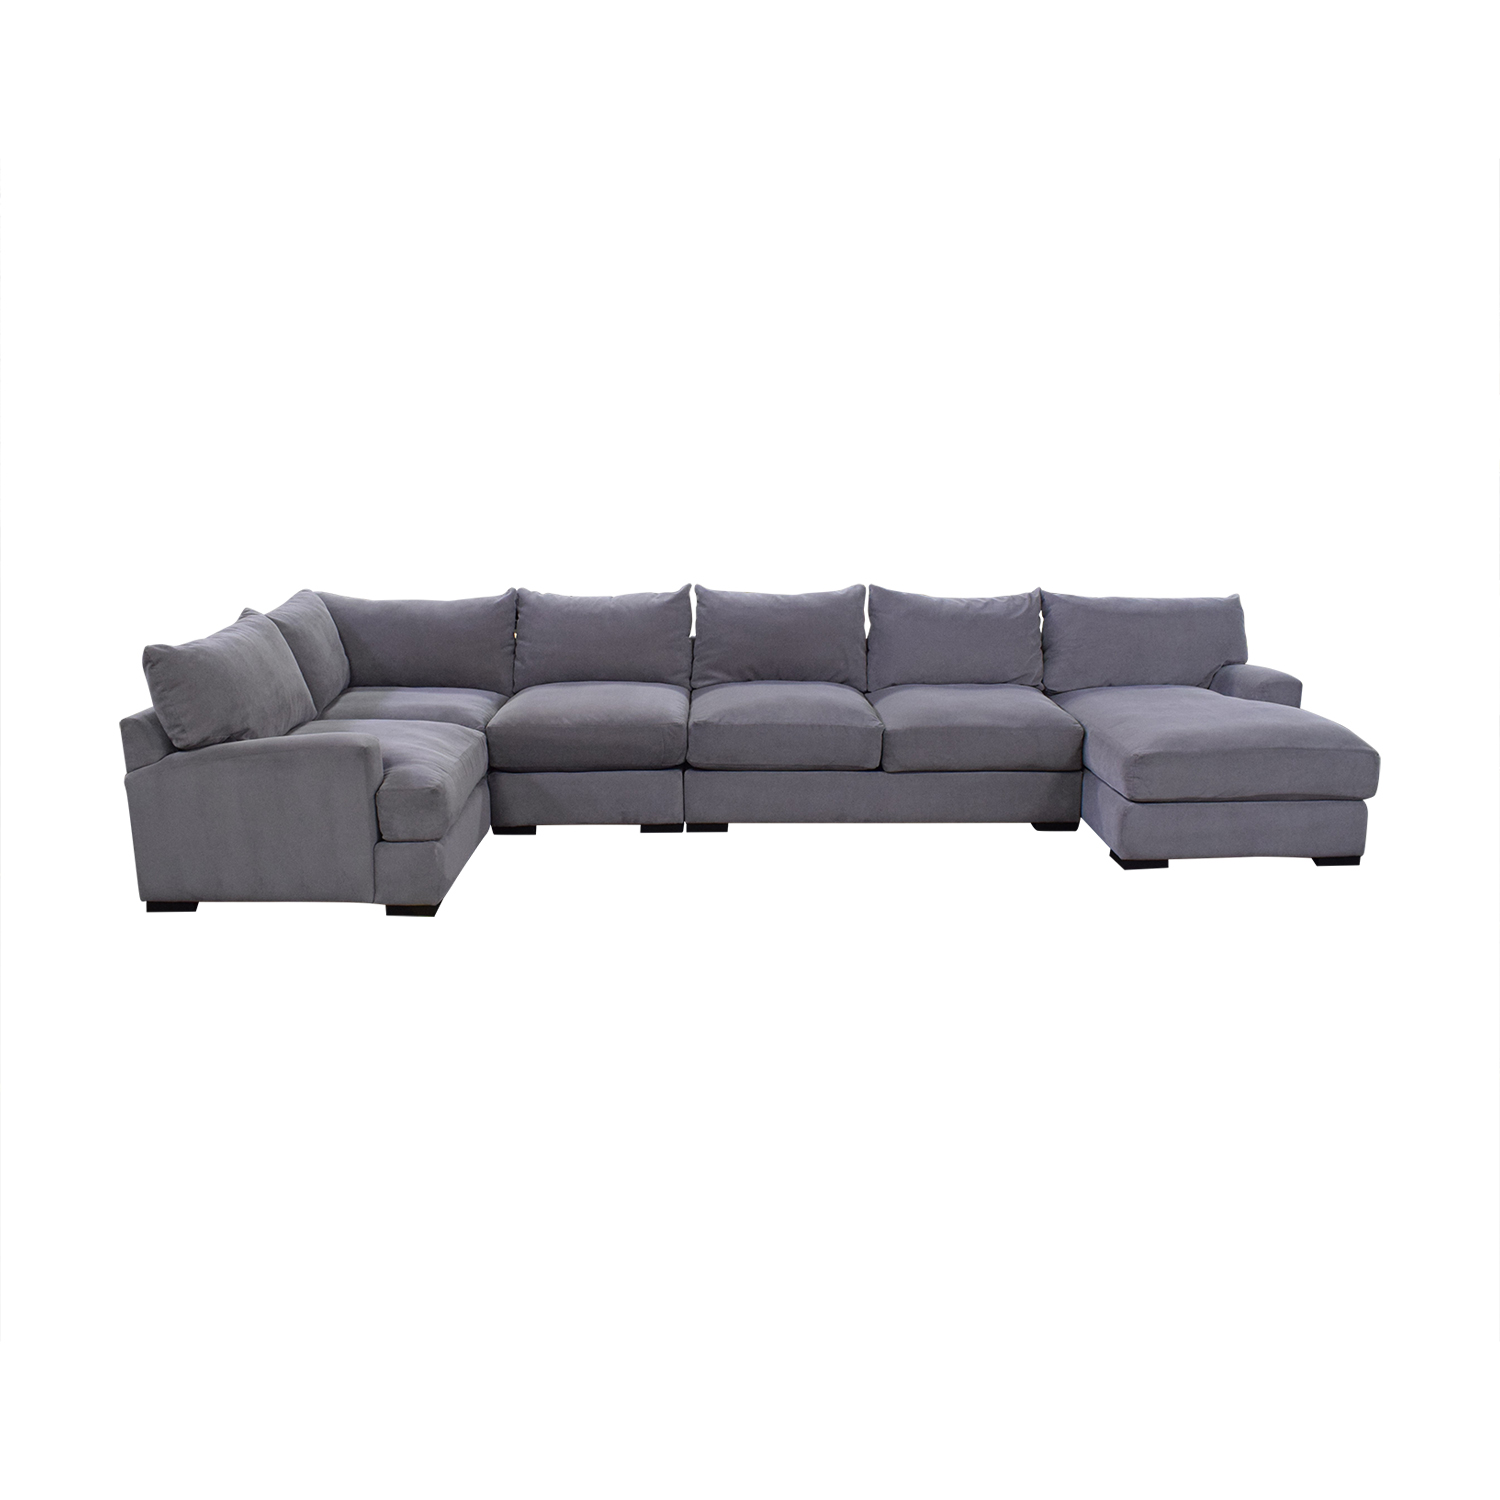 Macy's Rhyder 5 Piece Fabric Sectional Sofa with Chaise for sale